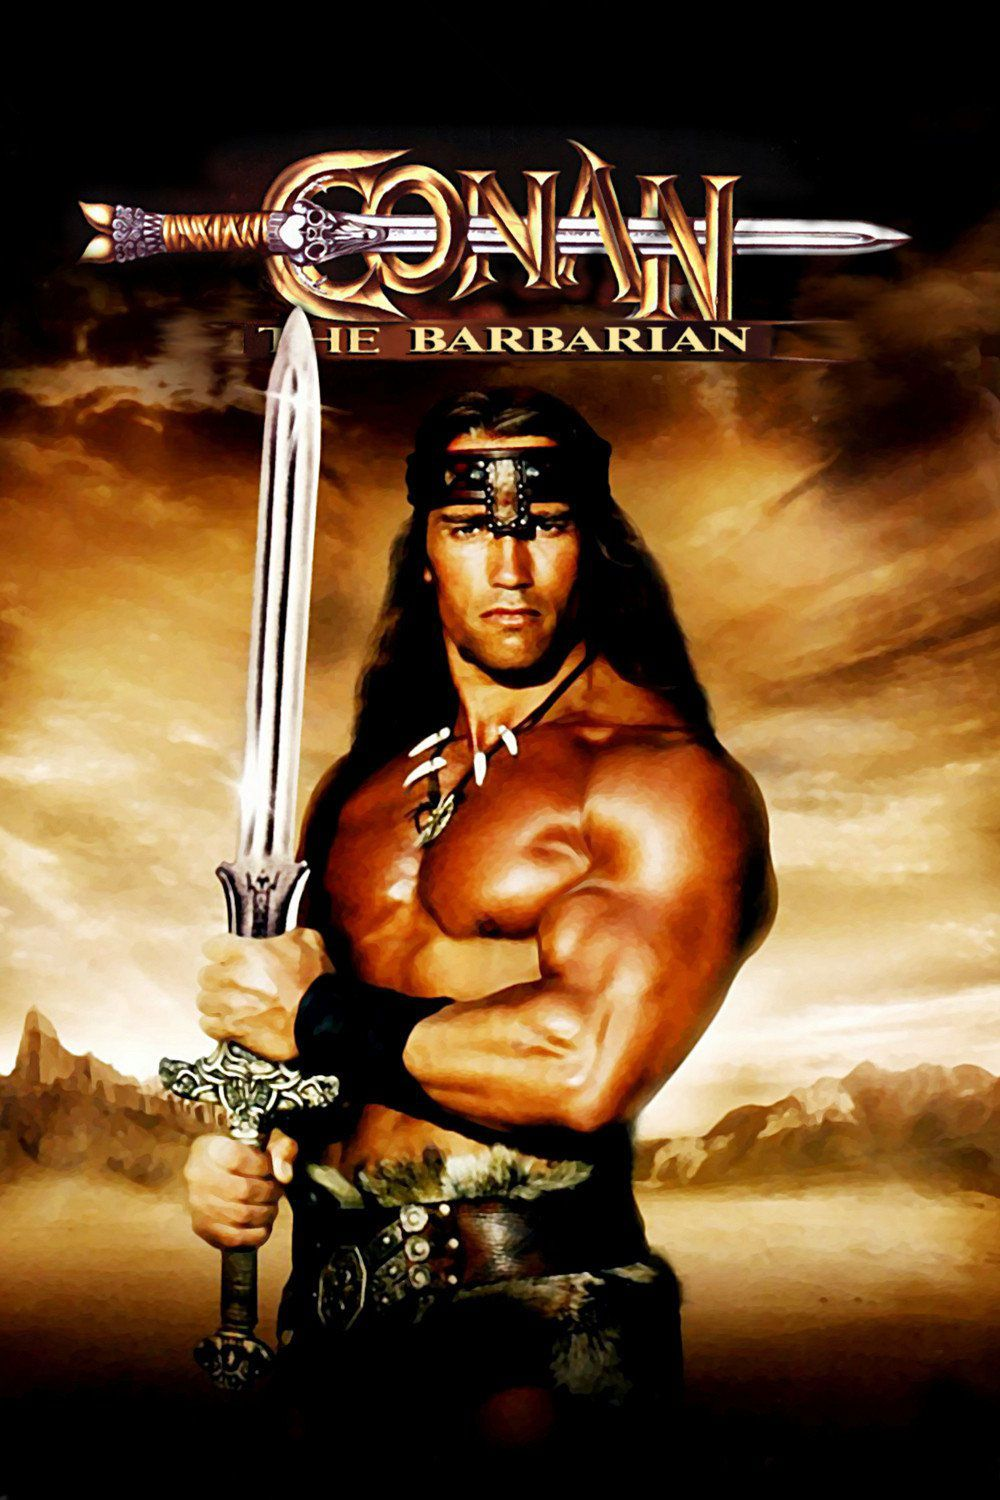 Conan the Barbarian TV Series in the Works at Amazon